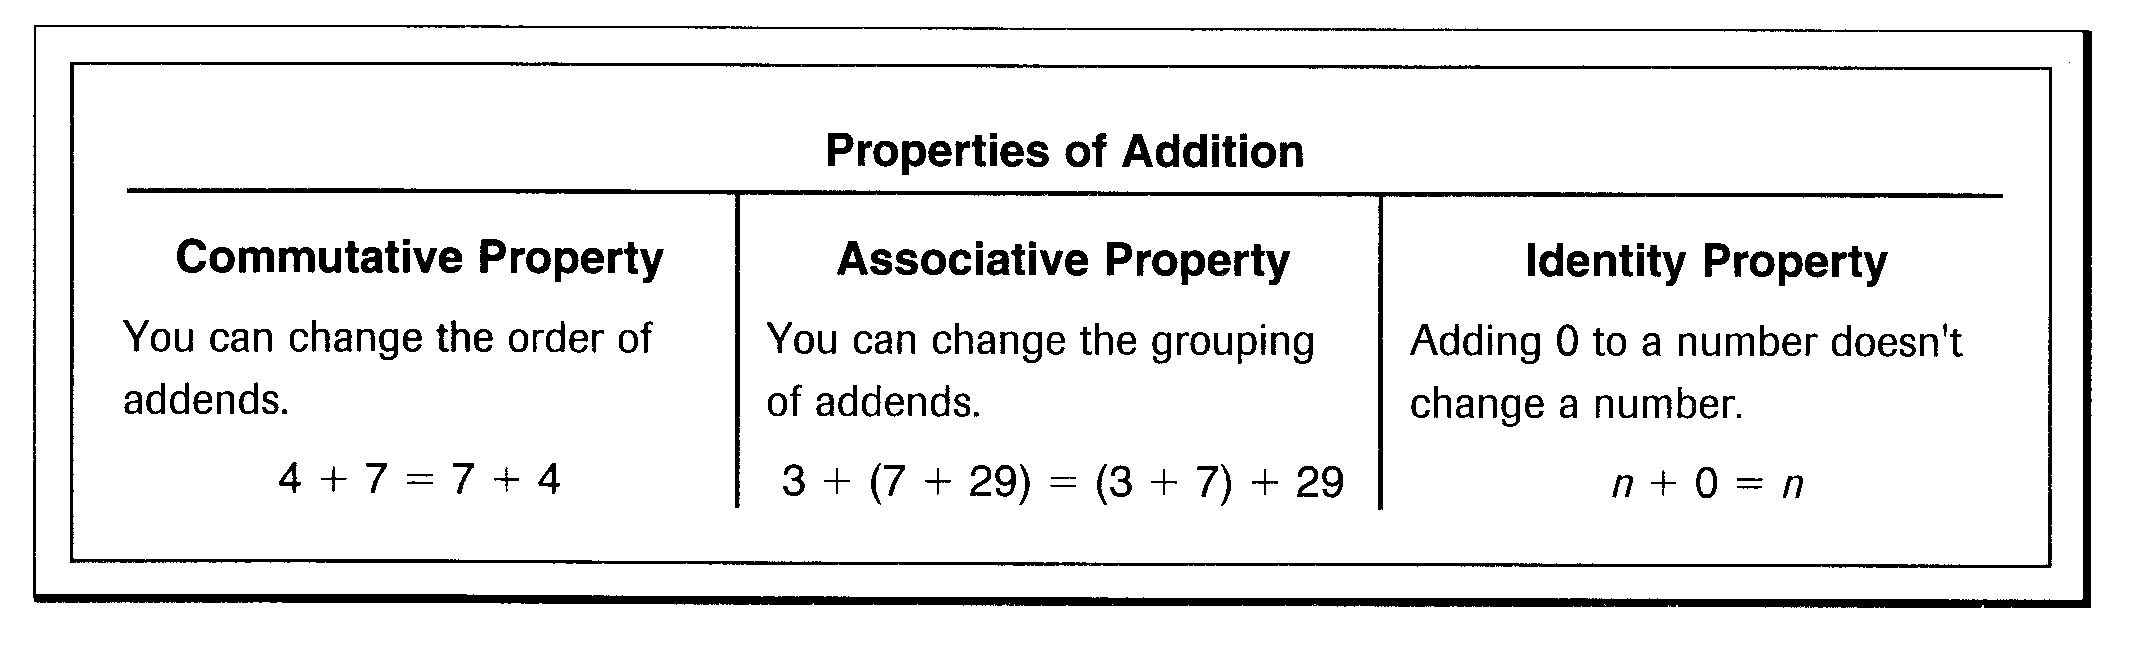 Identity Property Of Addition And Multiplication Worksheets – Commutative Property of Addition Worksheet